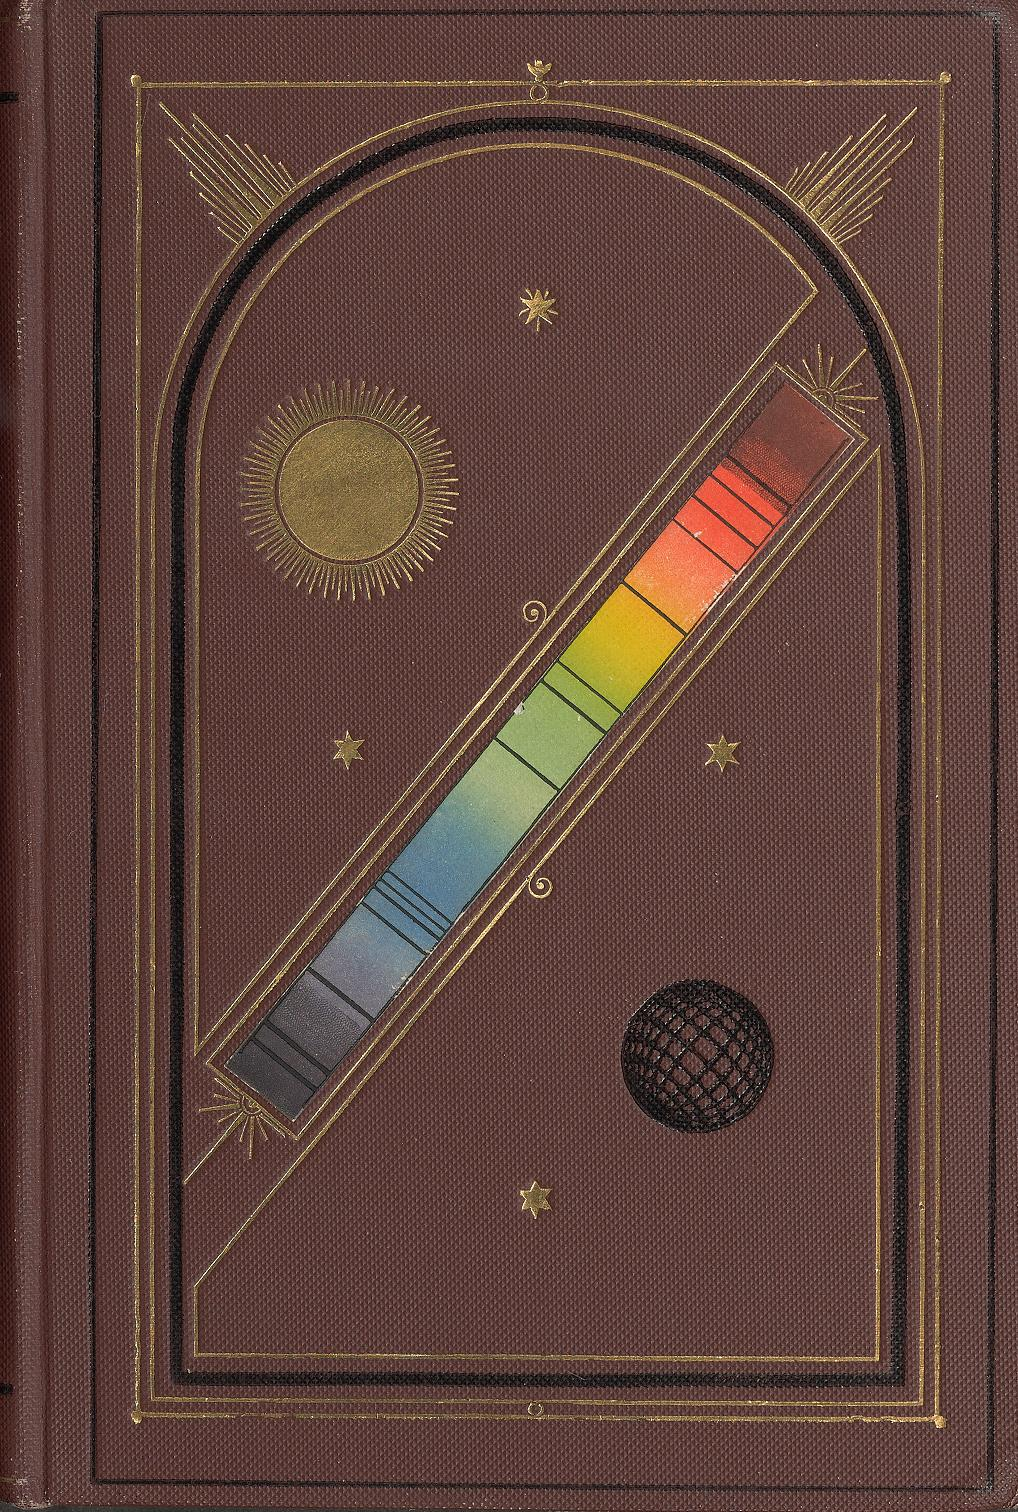 Brown leather cover of a book adorned with gold embossed lines and stars. There is a rainbow spectrum bar diagonally across the cover. Above the spectrum is a gold embossed sun, below is a line schematic of a sphere.